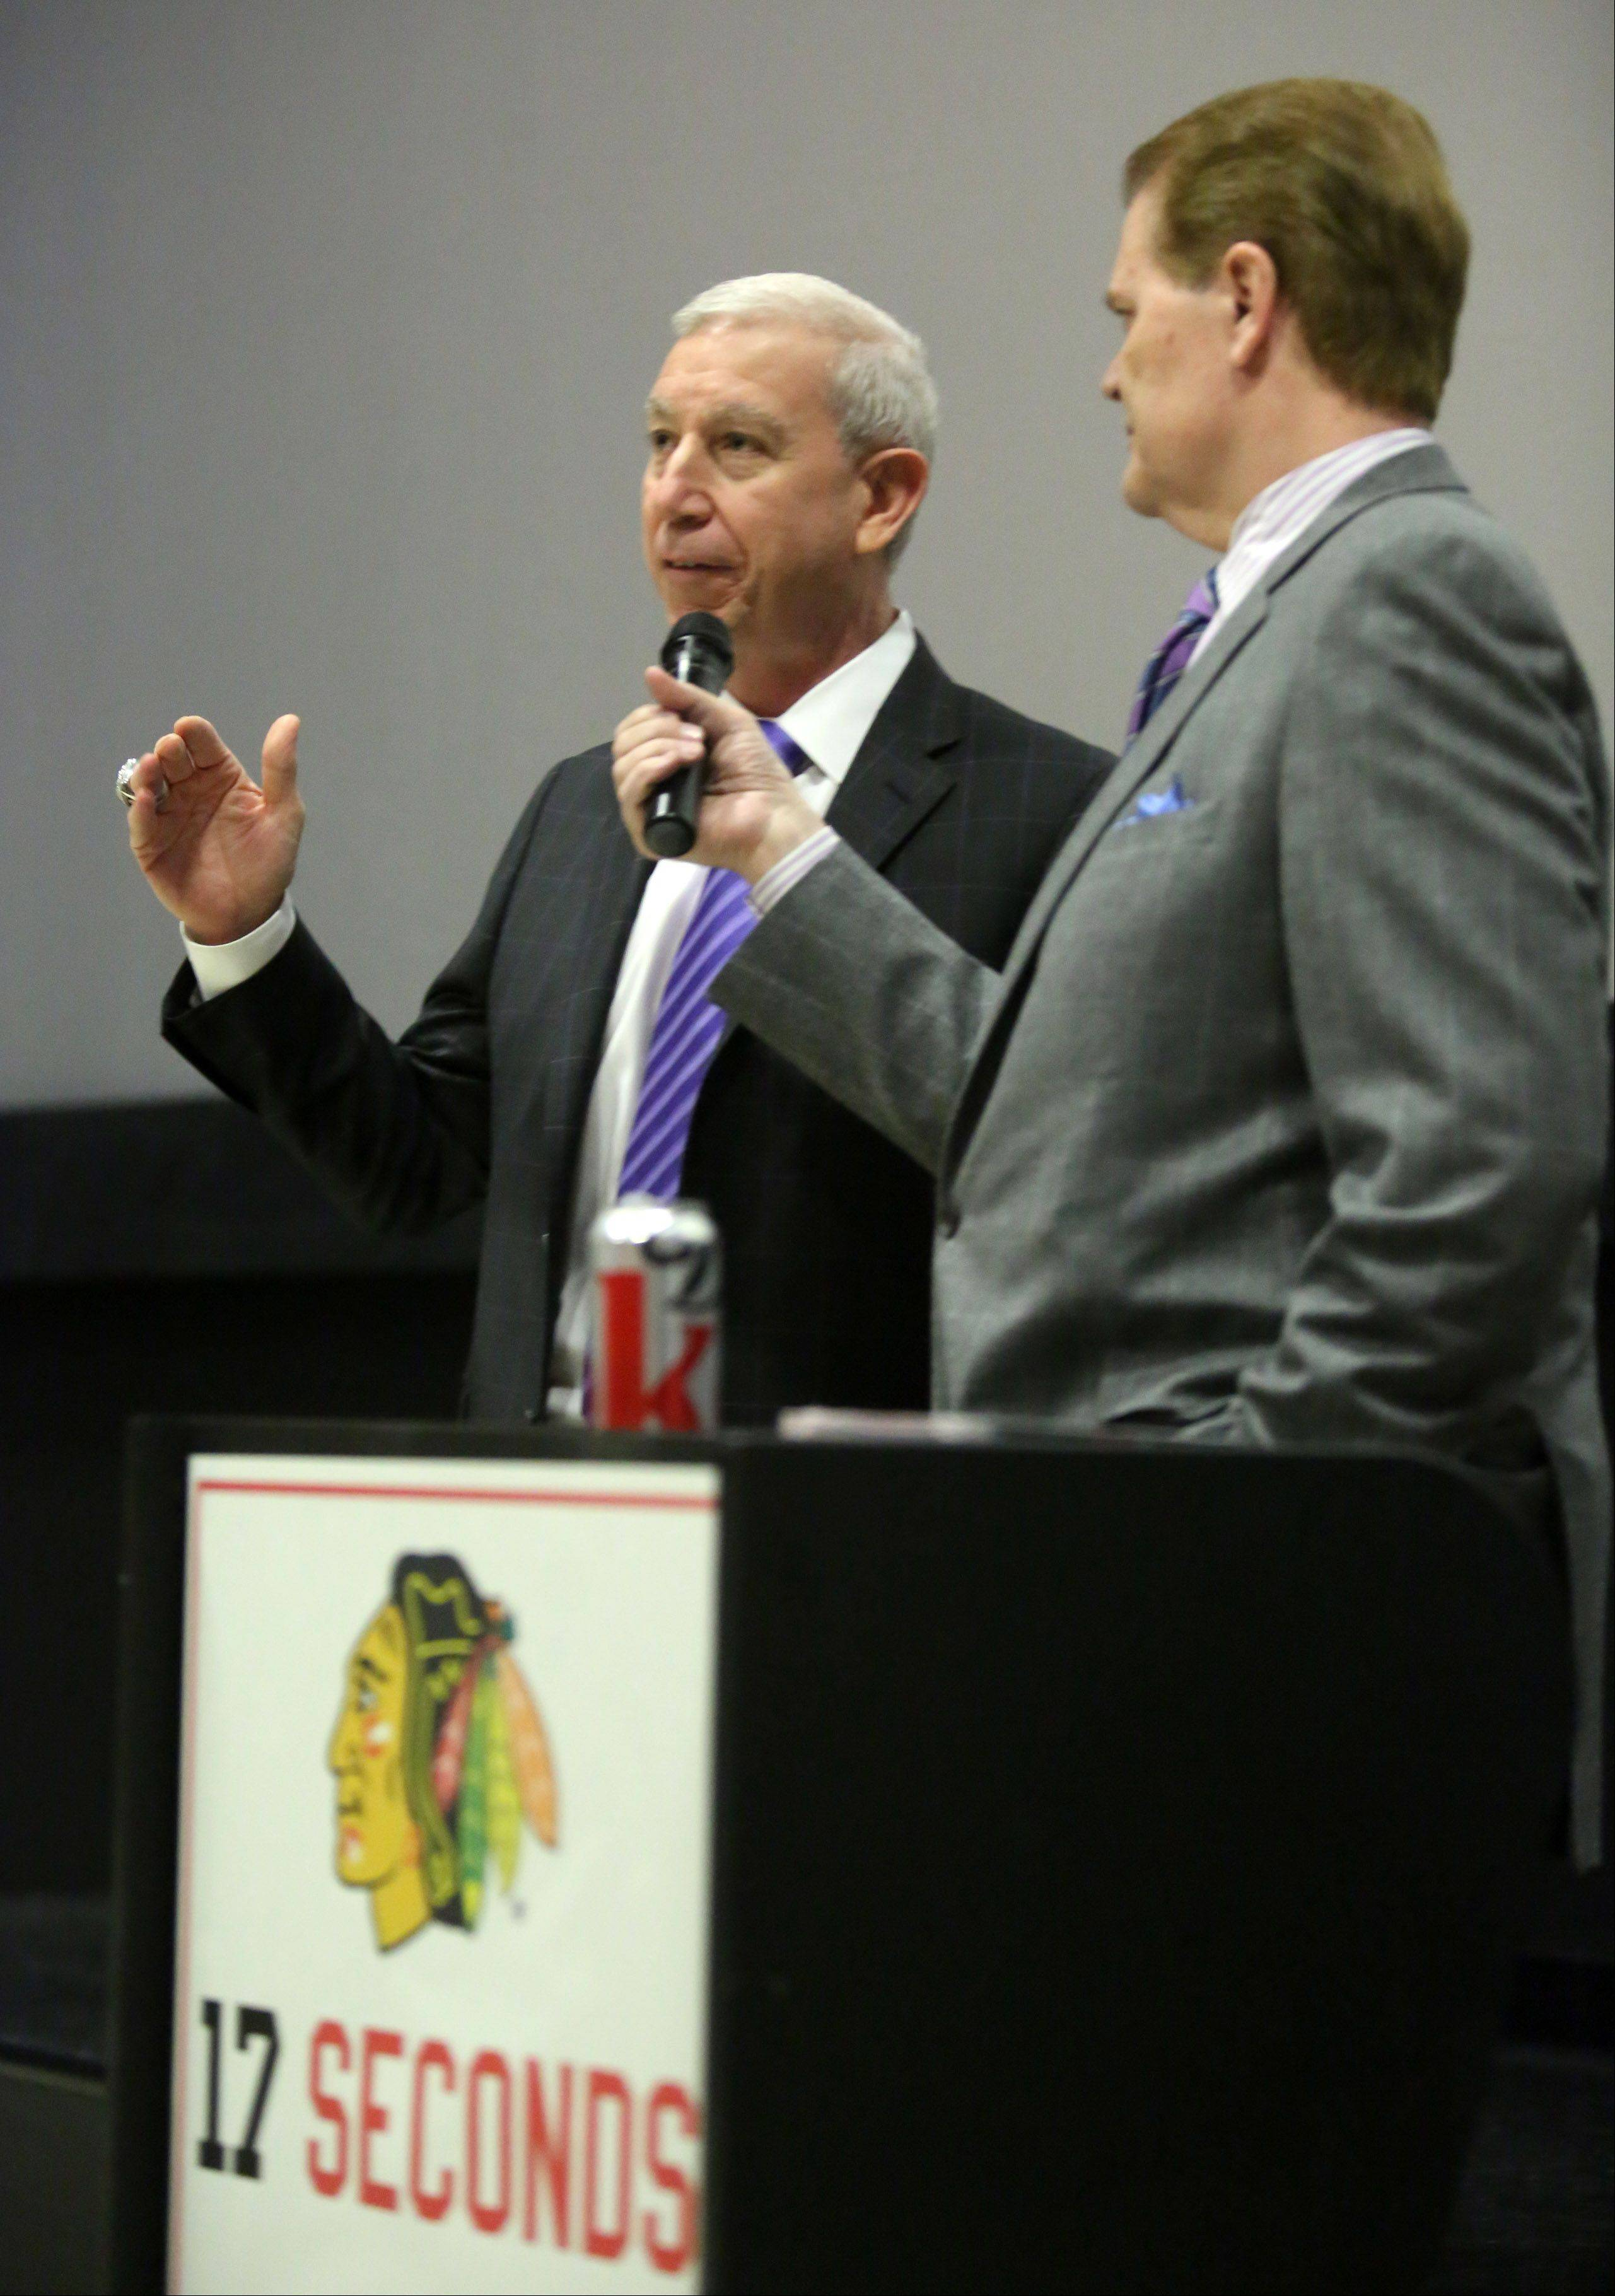 "Broadcaster Chet Coppock interviews John McDonough, president and CEO of the Chicago Blackhawks, before a screening of the film ""17 Seconds"" on Sunday at Classic Cinemas Theater in Elk Grove Village. The event, presented by the Daily Herald and the Blackhawks, also featured autograph signings and giveaways."